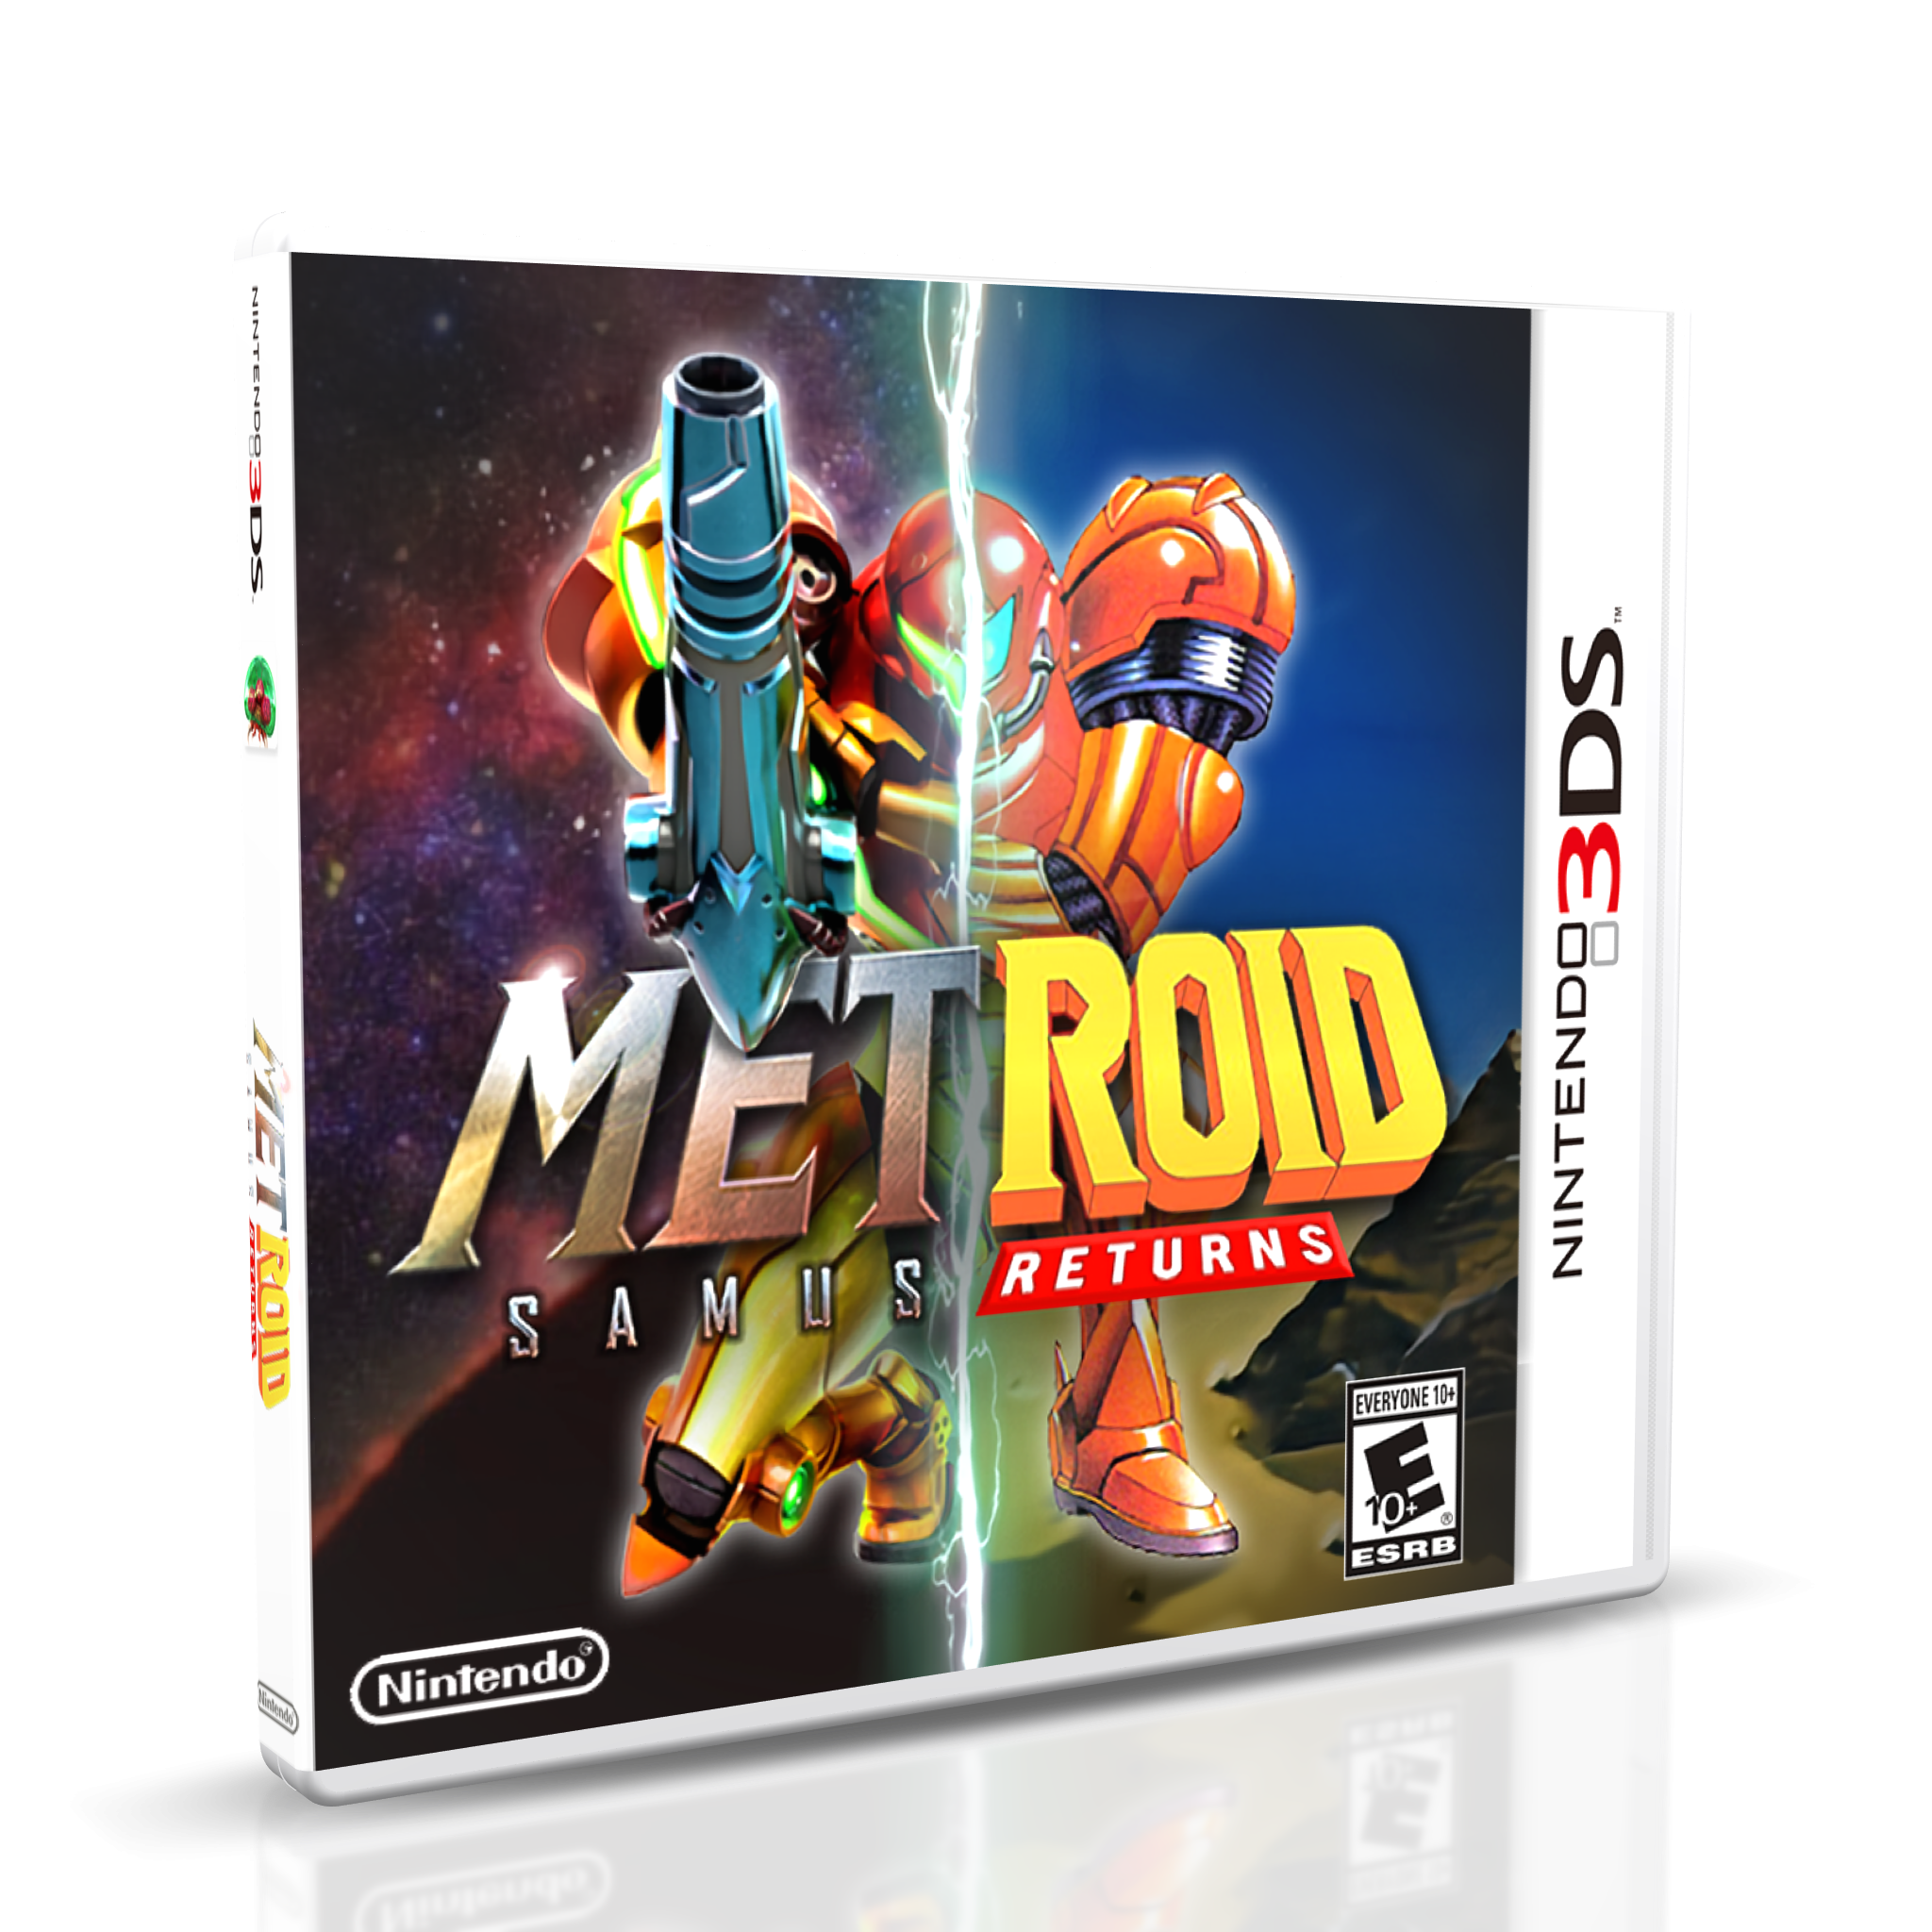 Metroid: Samus Returns box cover